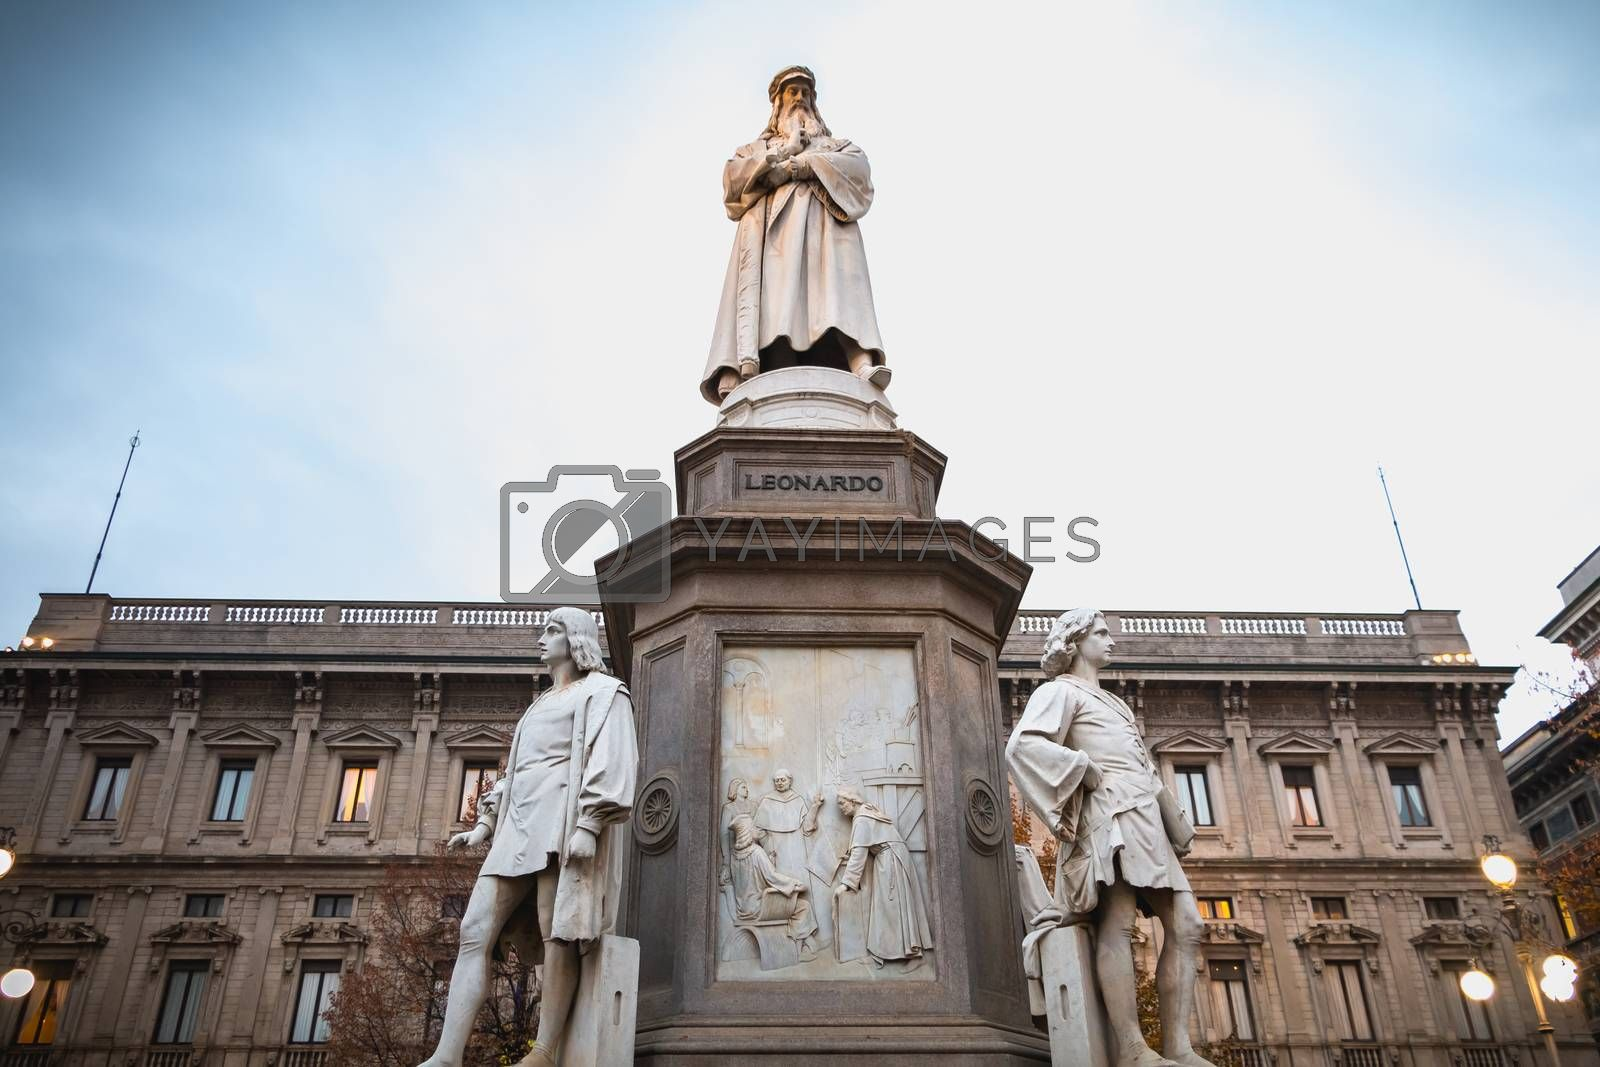 Milan, Italy - November 2, 2017: Architectural detail of a statue to the glory of Leonardo da Vinci by sculptor Pietro Magni in 1872 in front of Milan City Hall